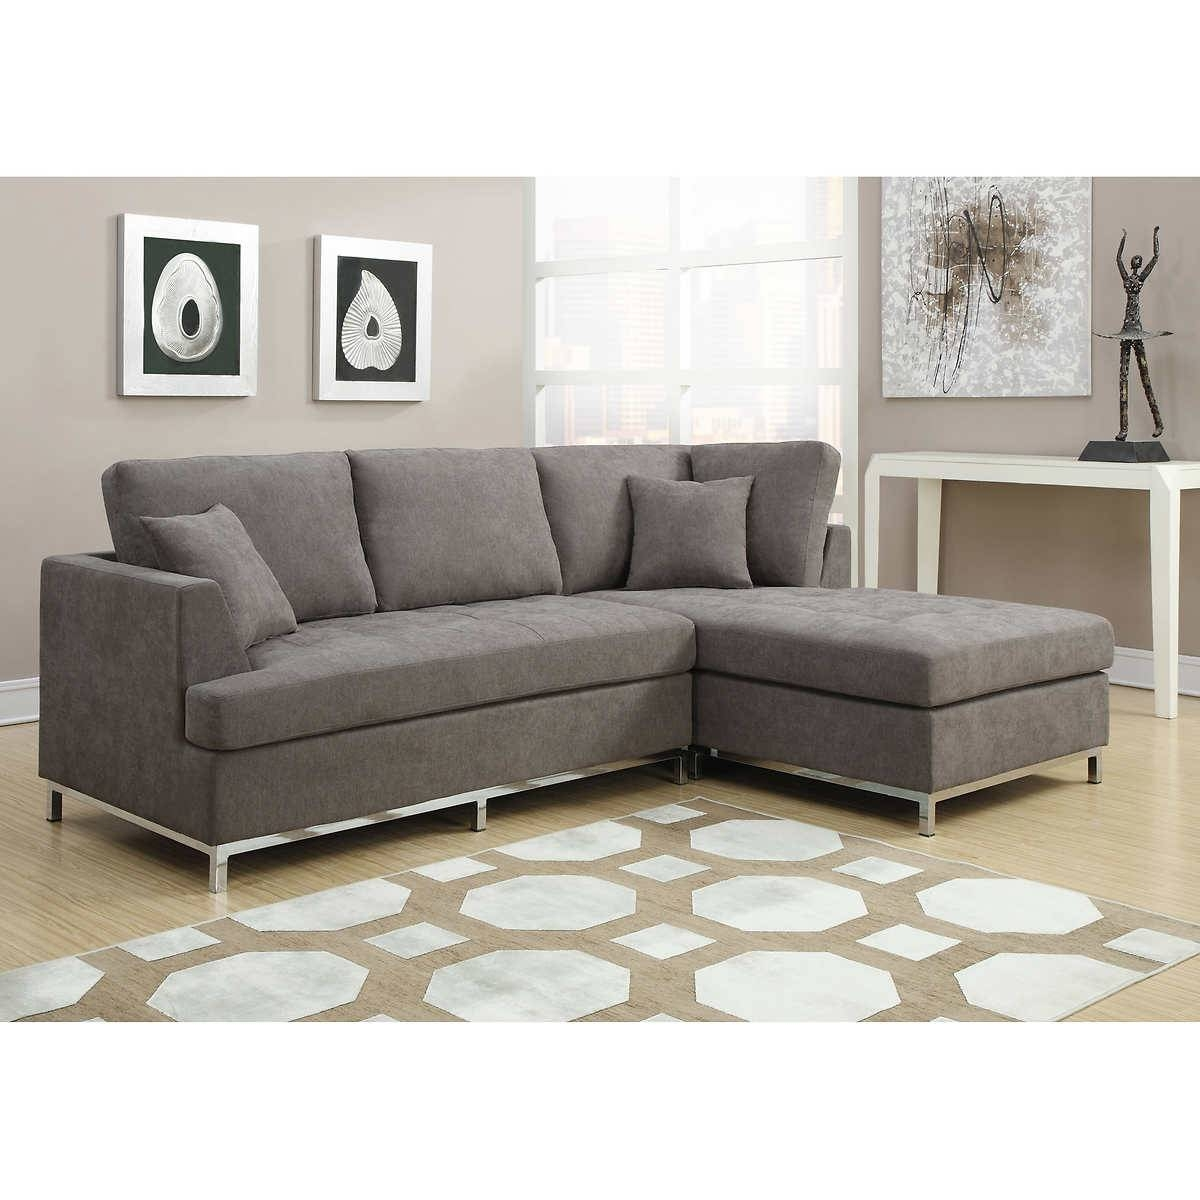 Latest Trend Of Costco Sectional Sofas 28 On Small Leather within Costco Leather Sectional Sofas (Image 8 of 15)